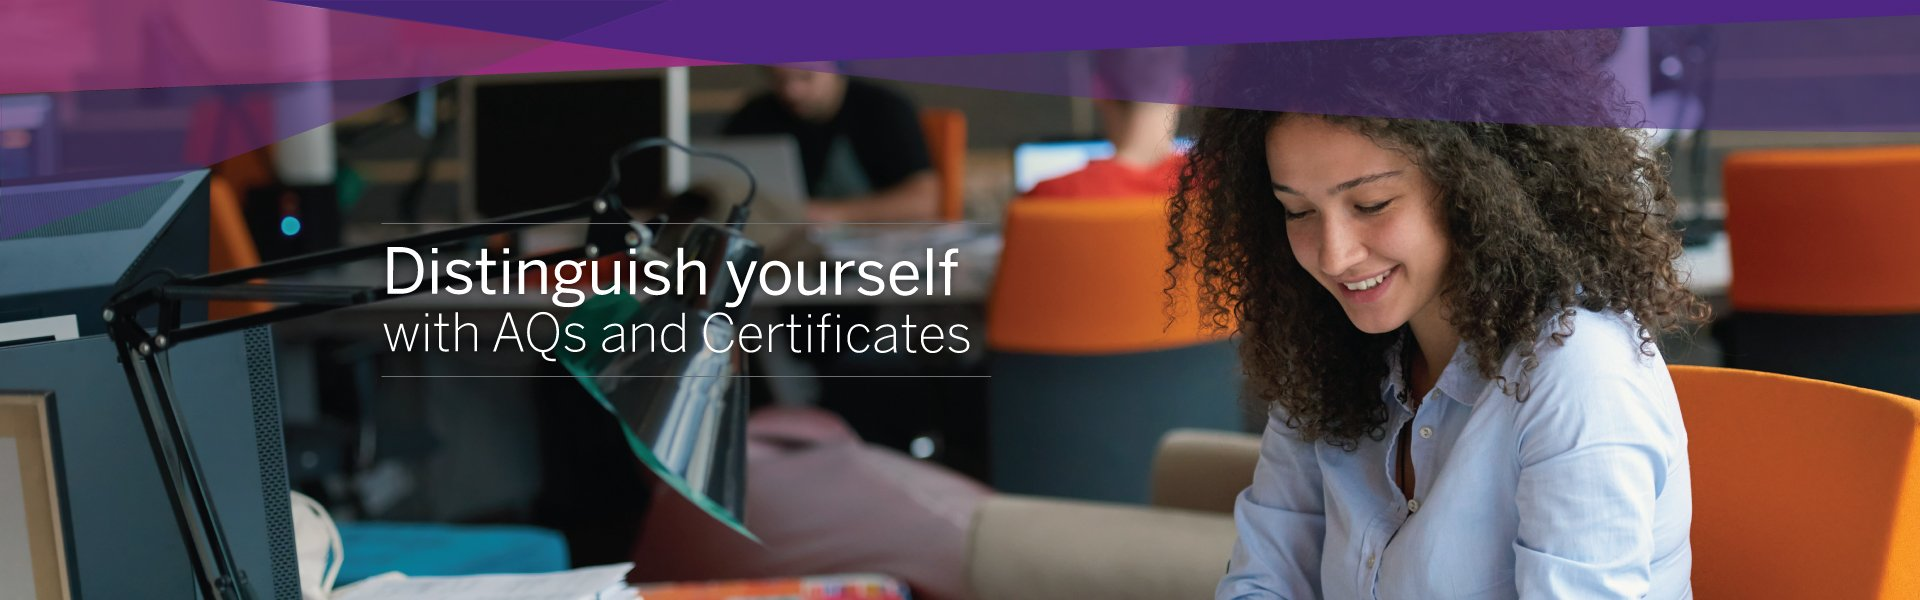 Distinguish yourself with AQ's and Certificates